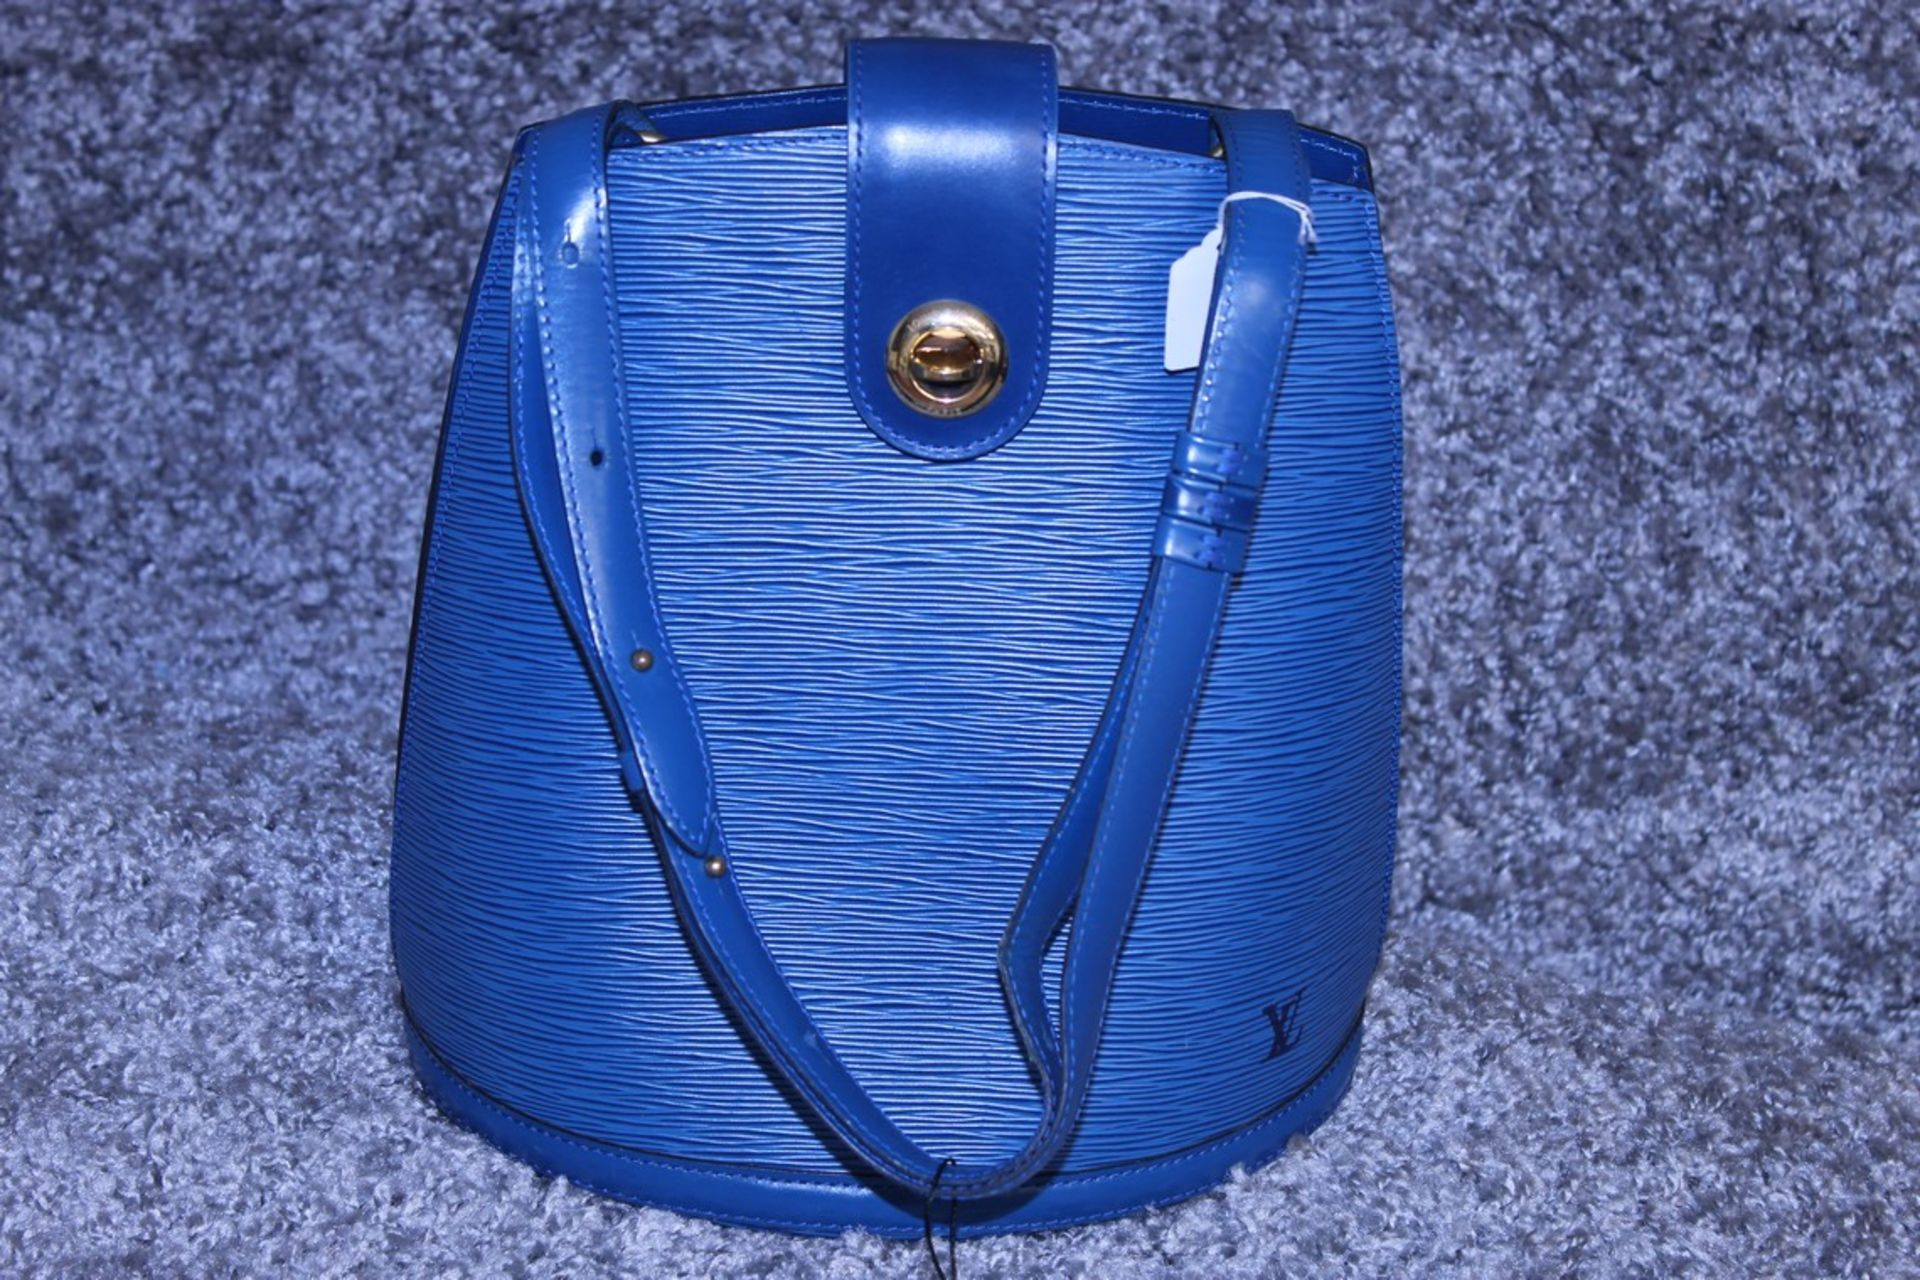 RRP £1,500 Louis Vuitton Cluny Blue Calf Leather Shoulder Bag With Blue Leather Handles, - Image 2 of 5